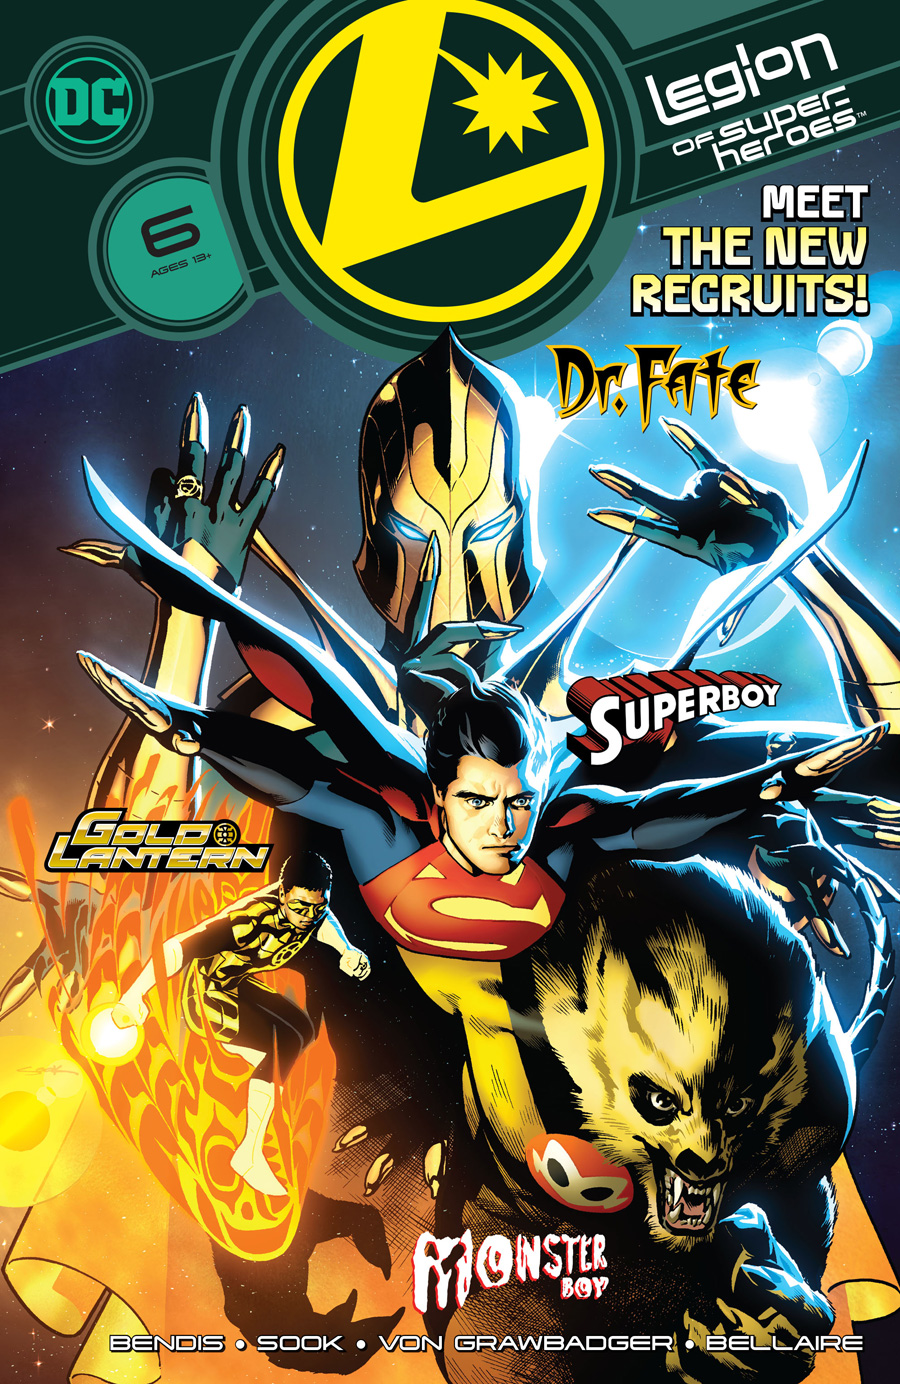 Legion Of Super Heroes #6 (2020)